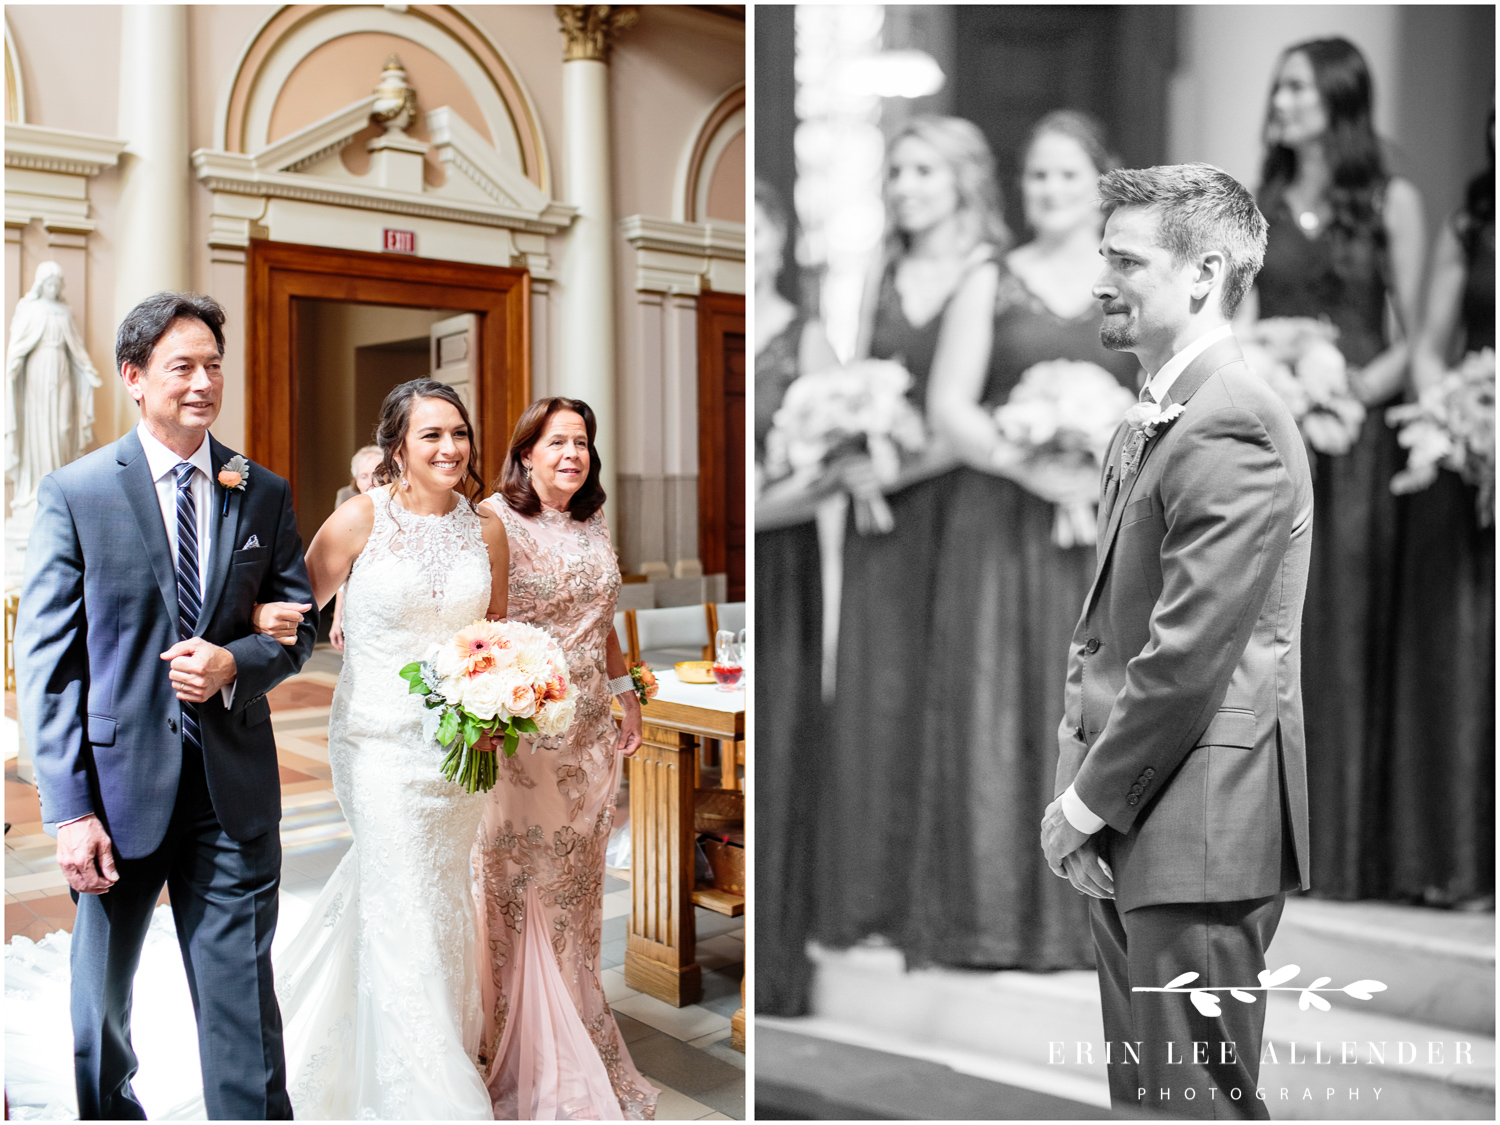 Groom-sees-bride-for-the-first-time